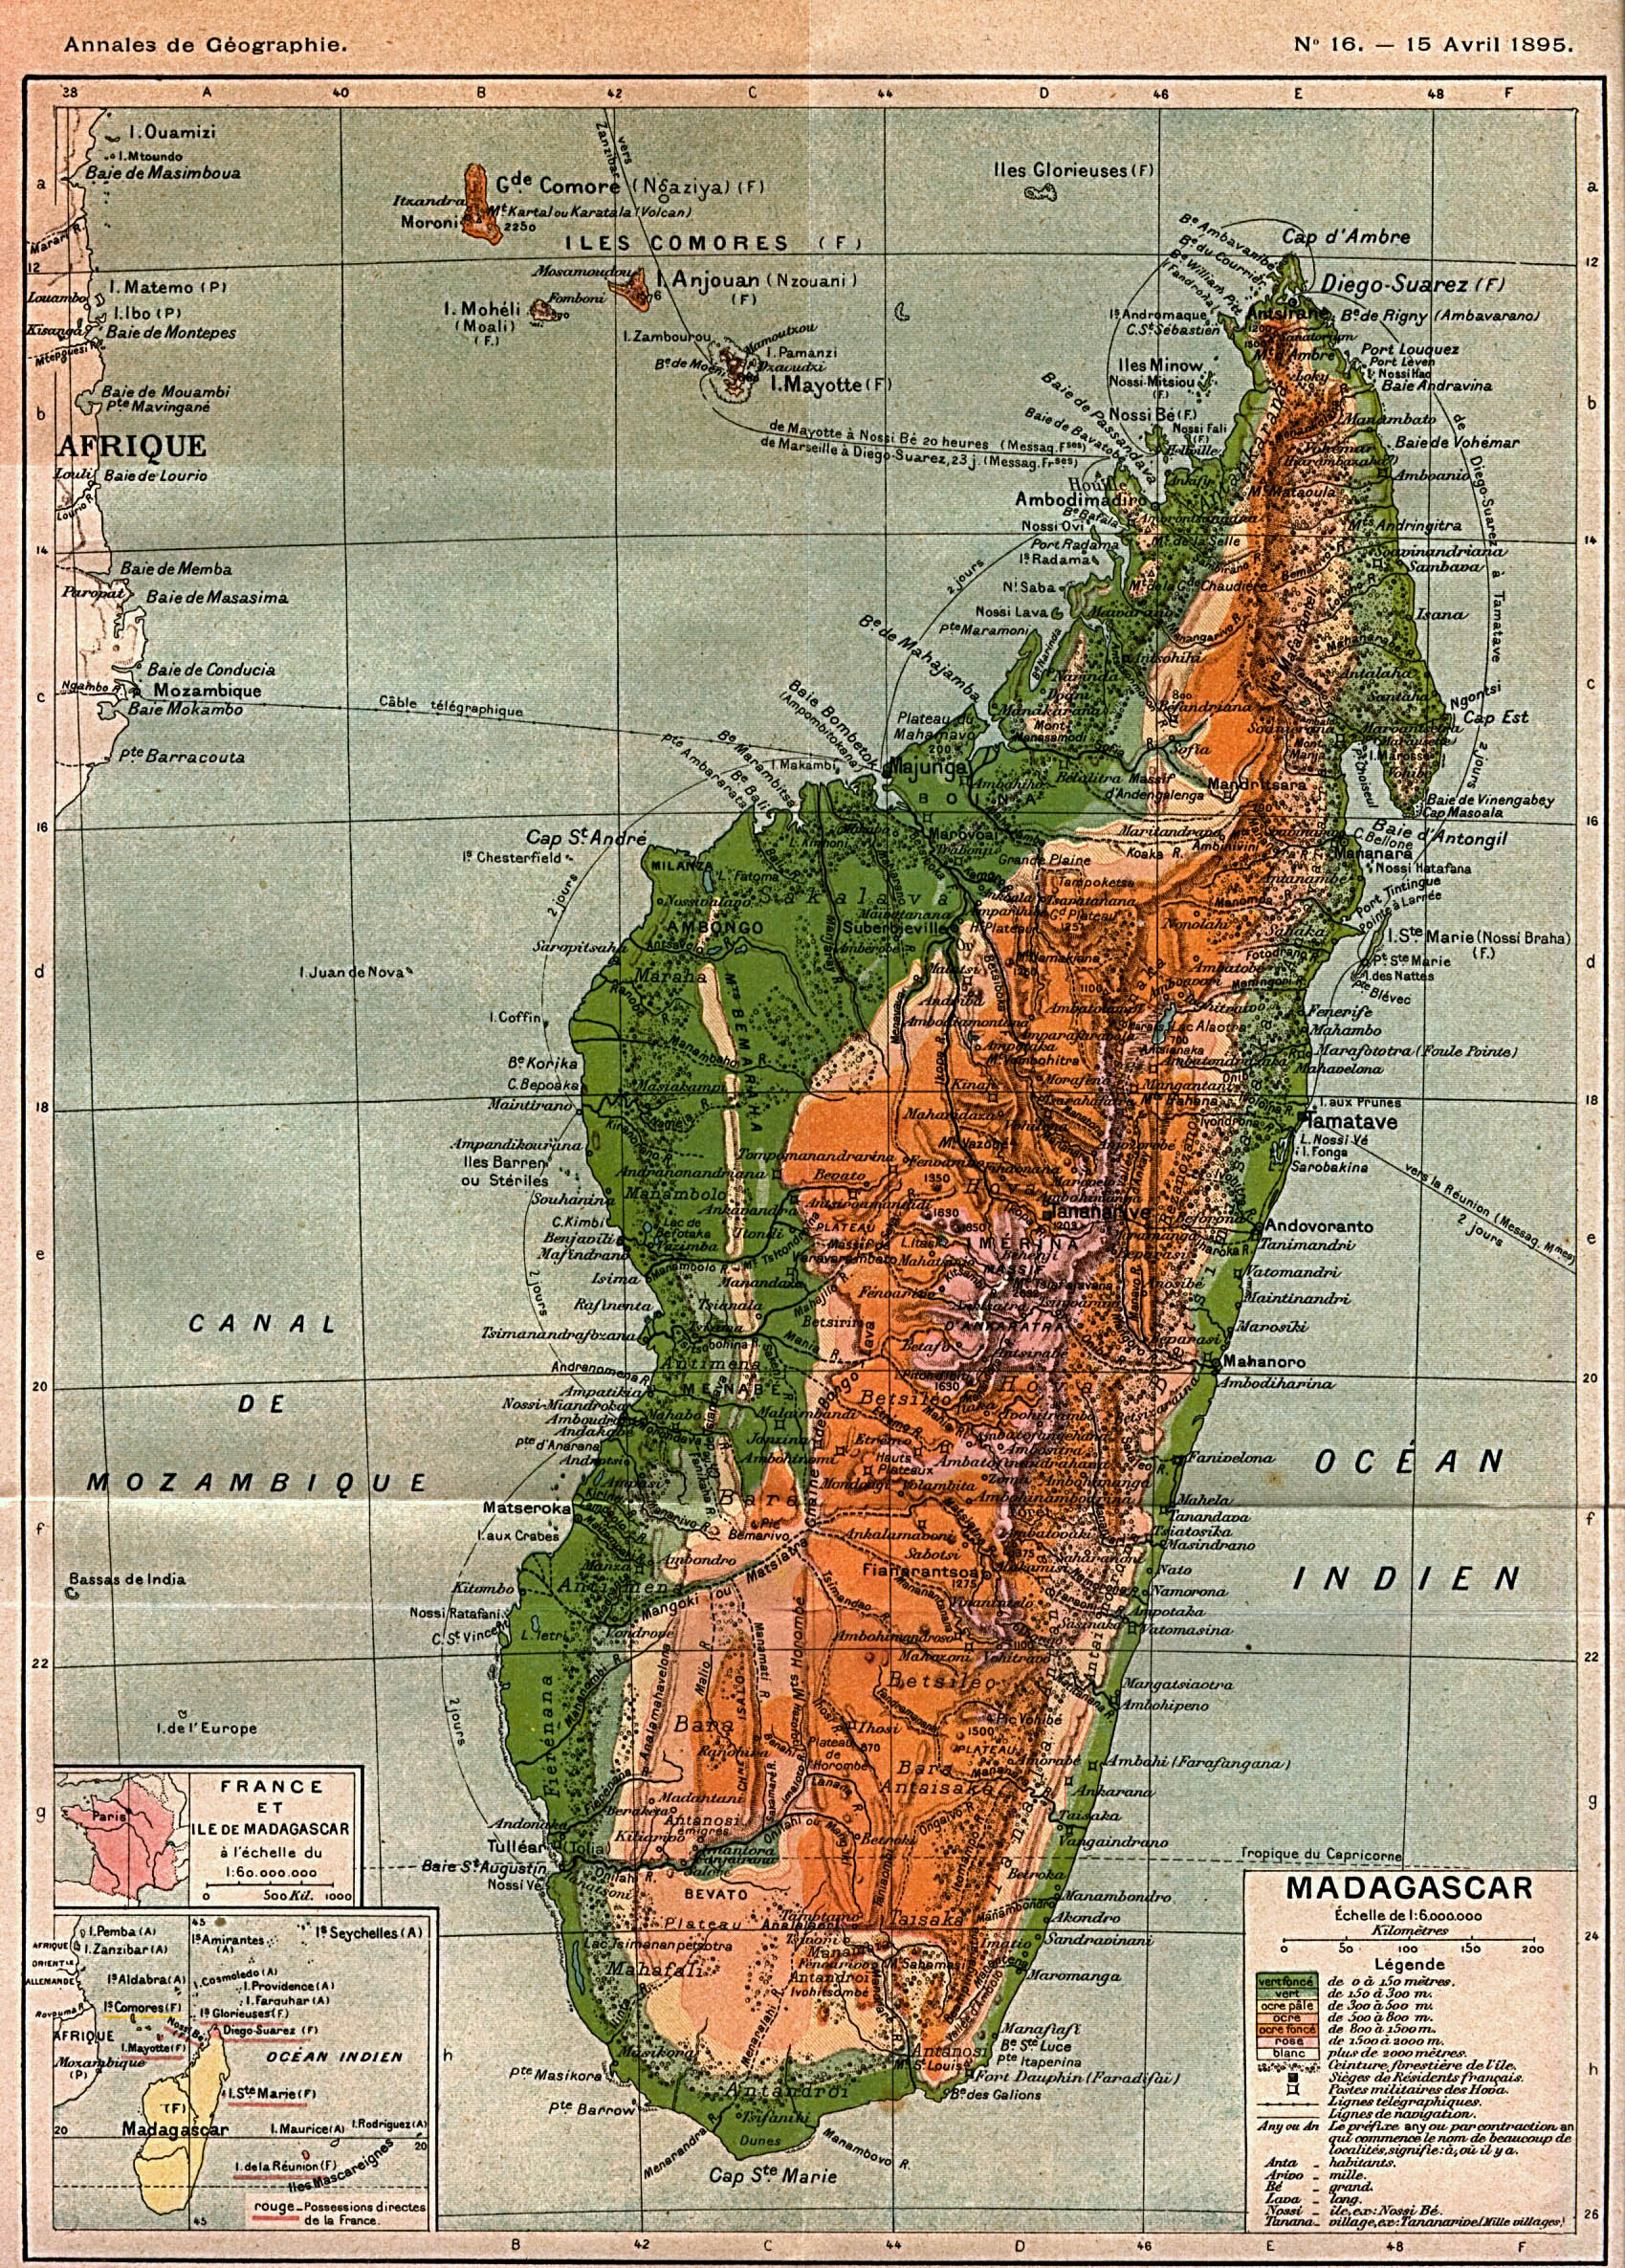 Madagascar Map 1895